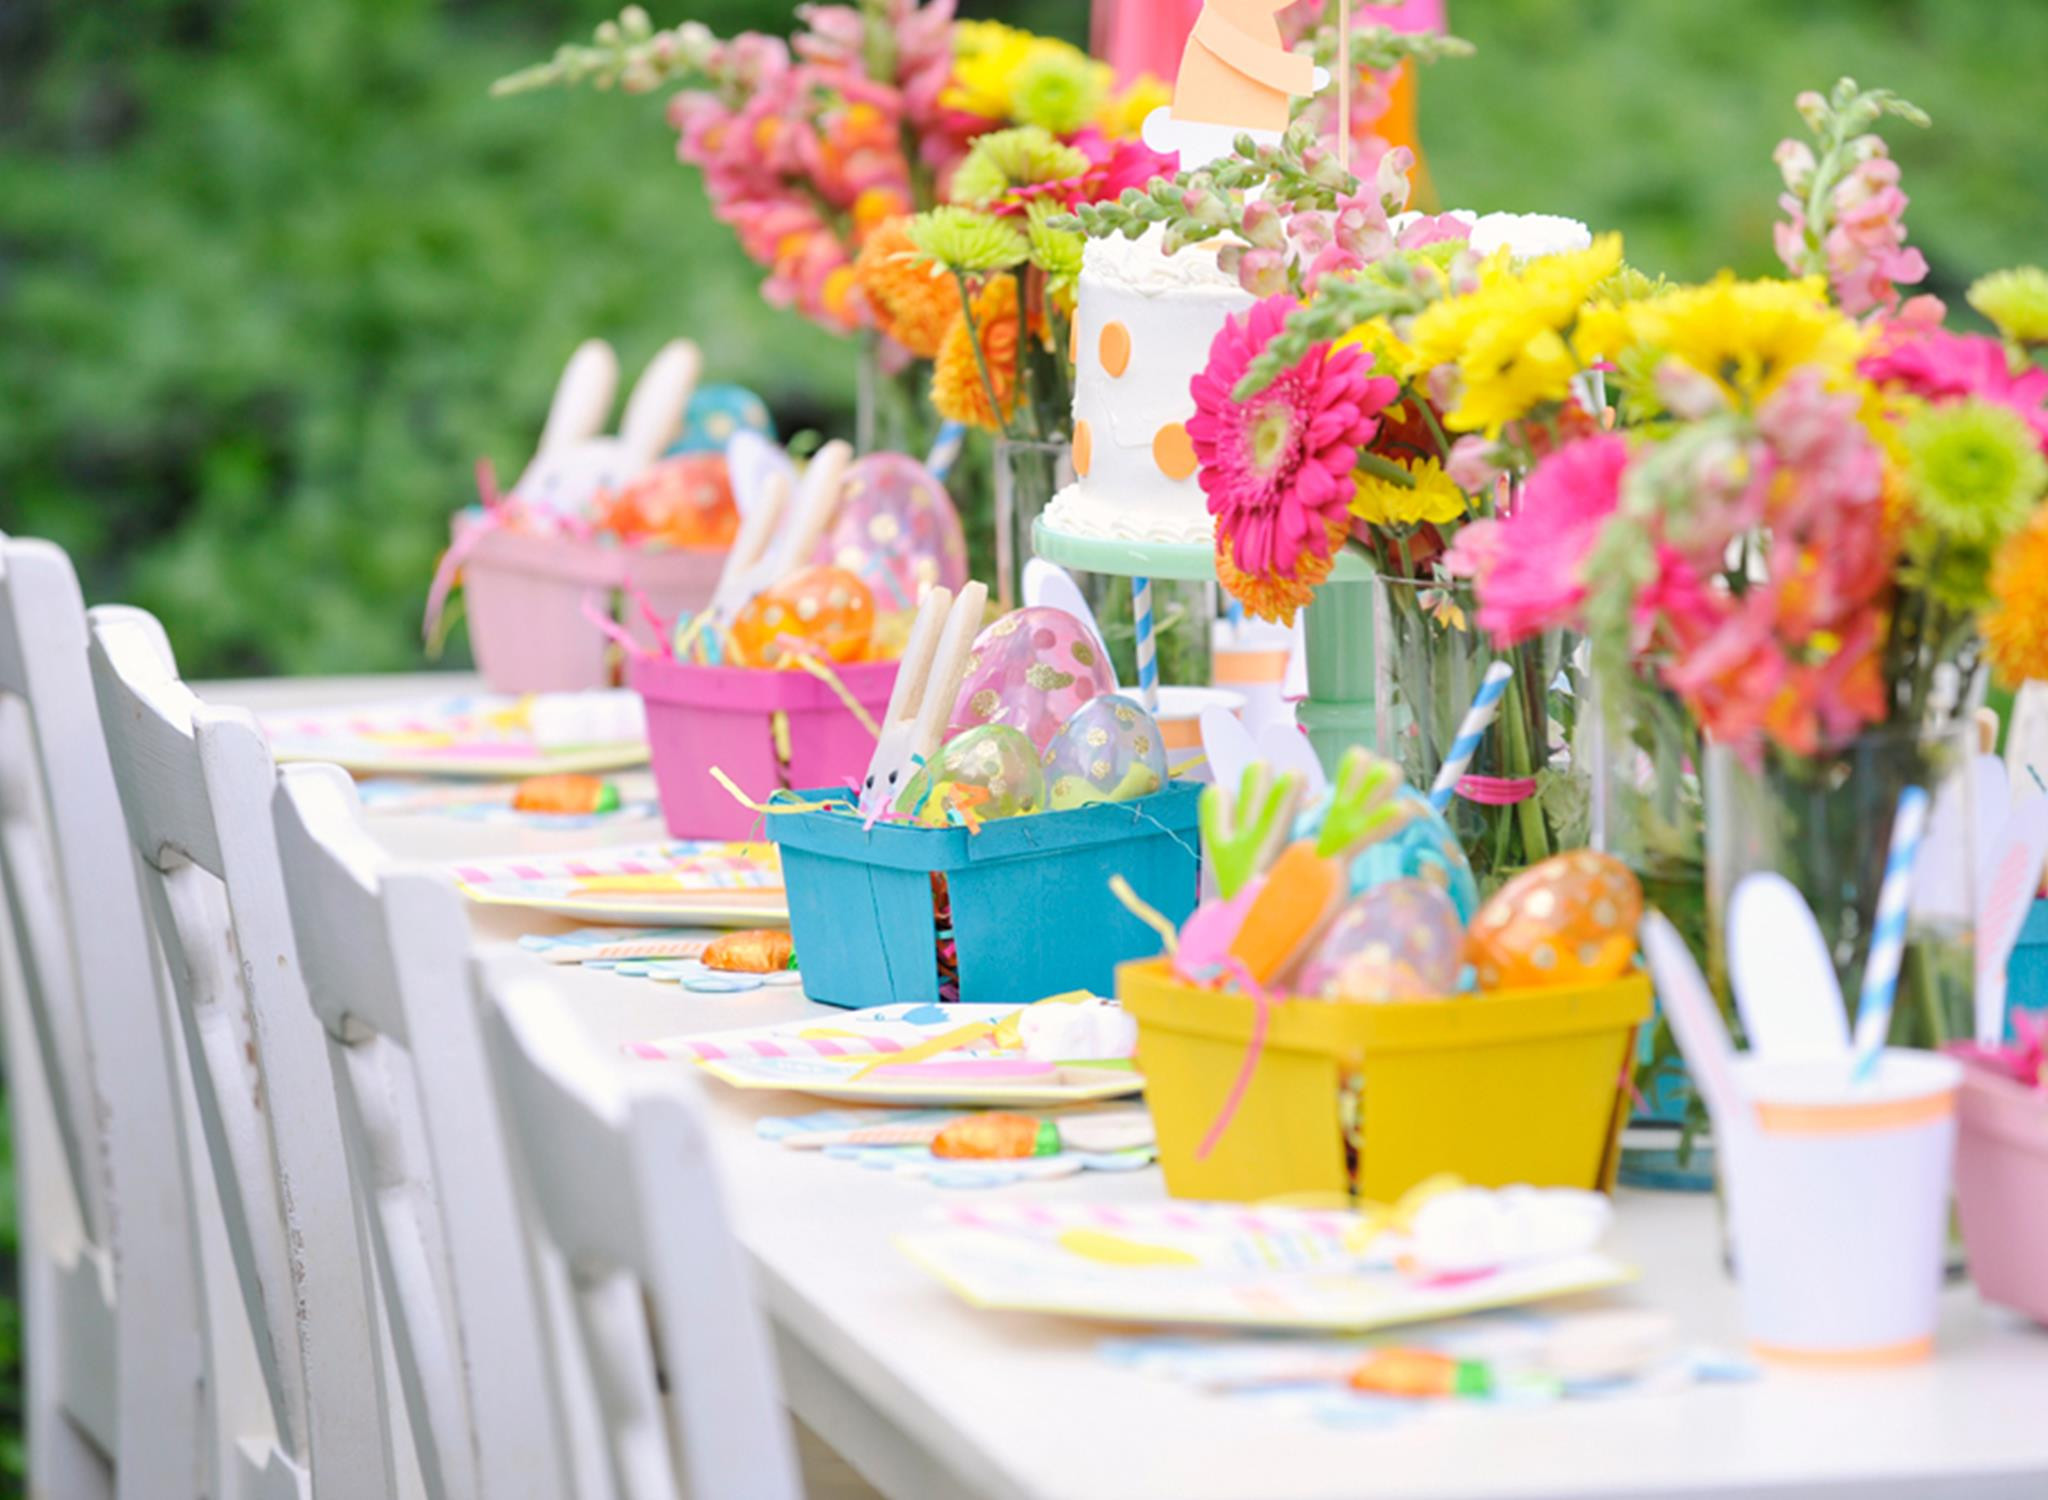 Party Ideas For Easter  Plan a Bunny tastic Kids Easter Party Project Nursery